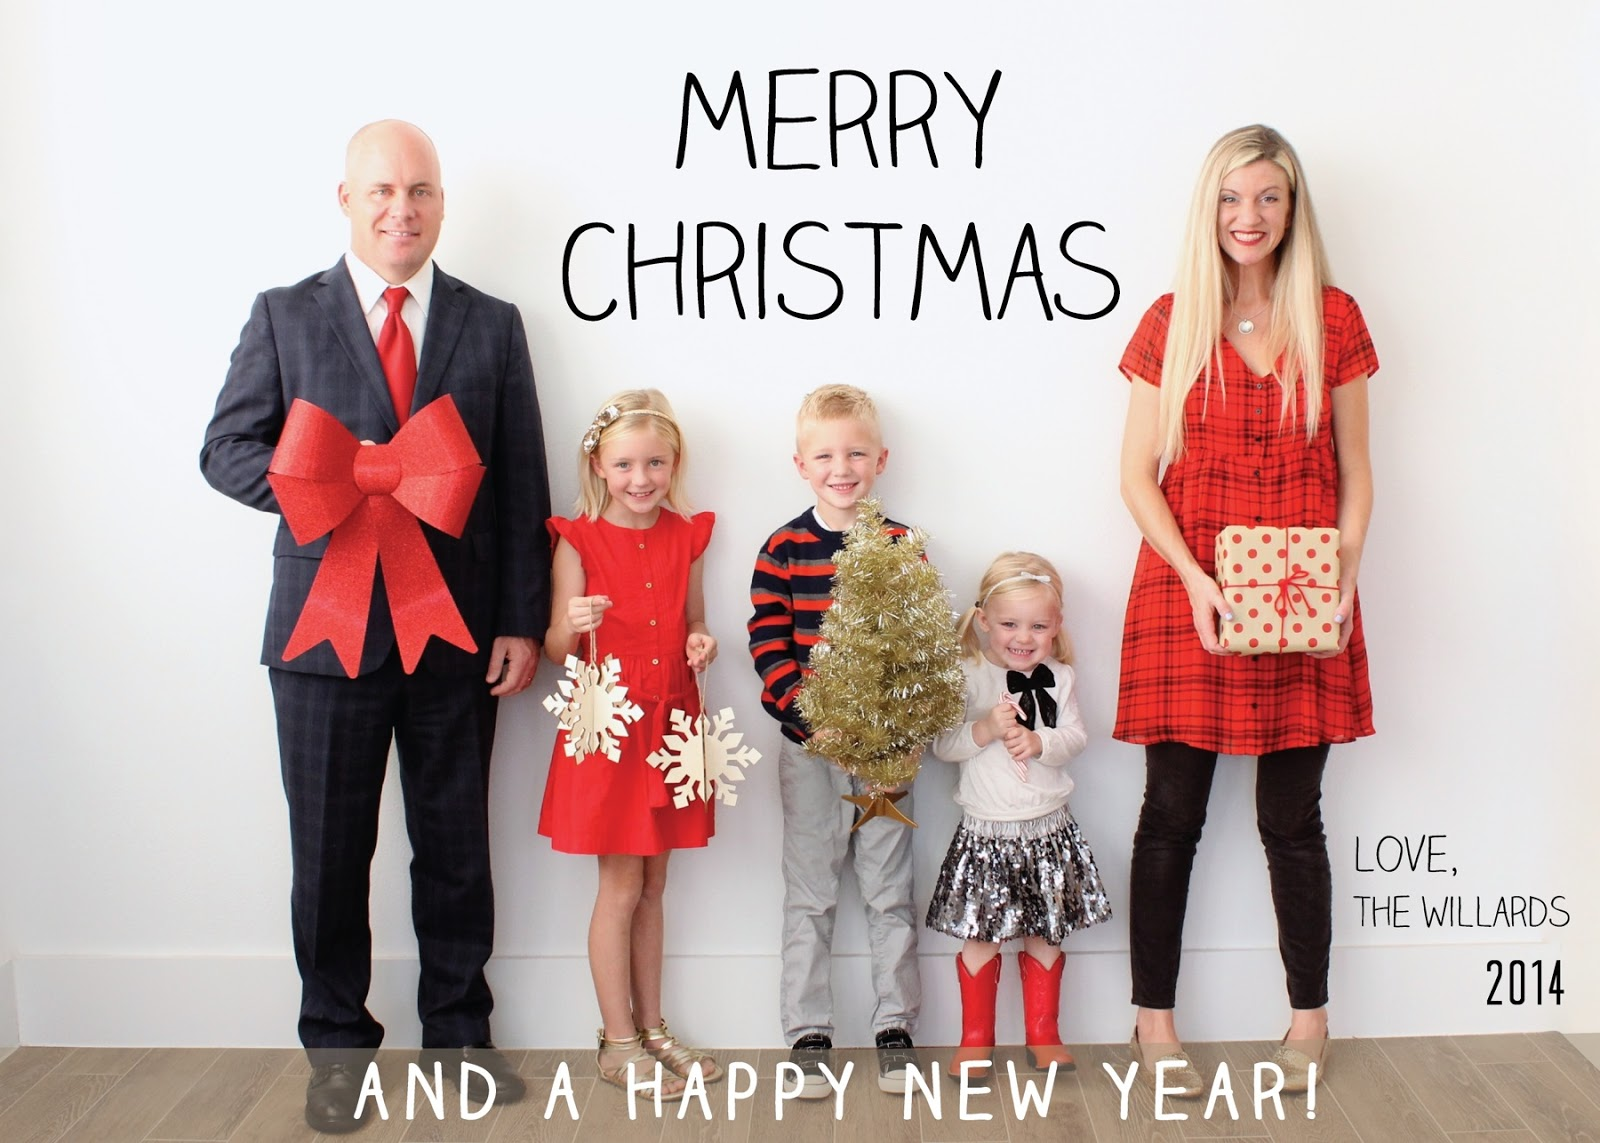 a merry 2014 christmas card from our family to yours made everyday - Family Photo Christmas Cards